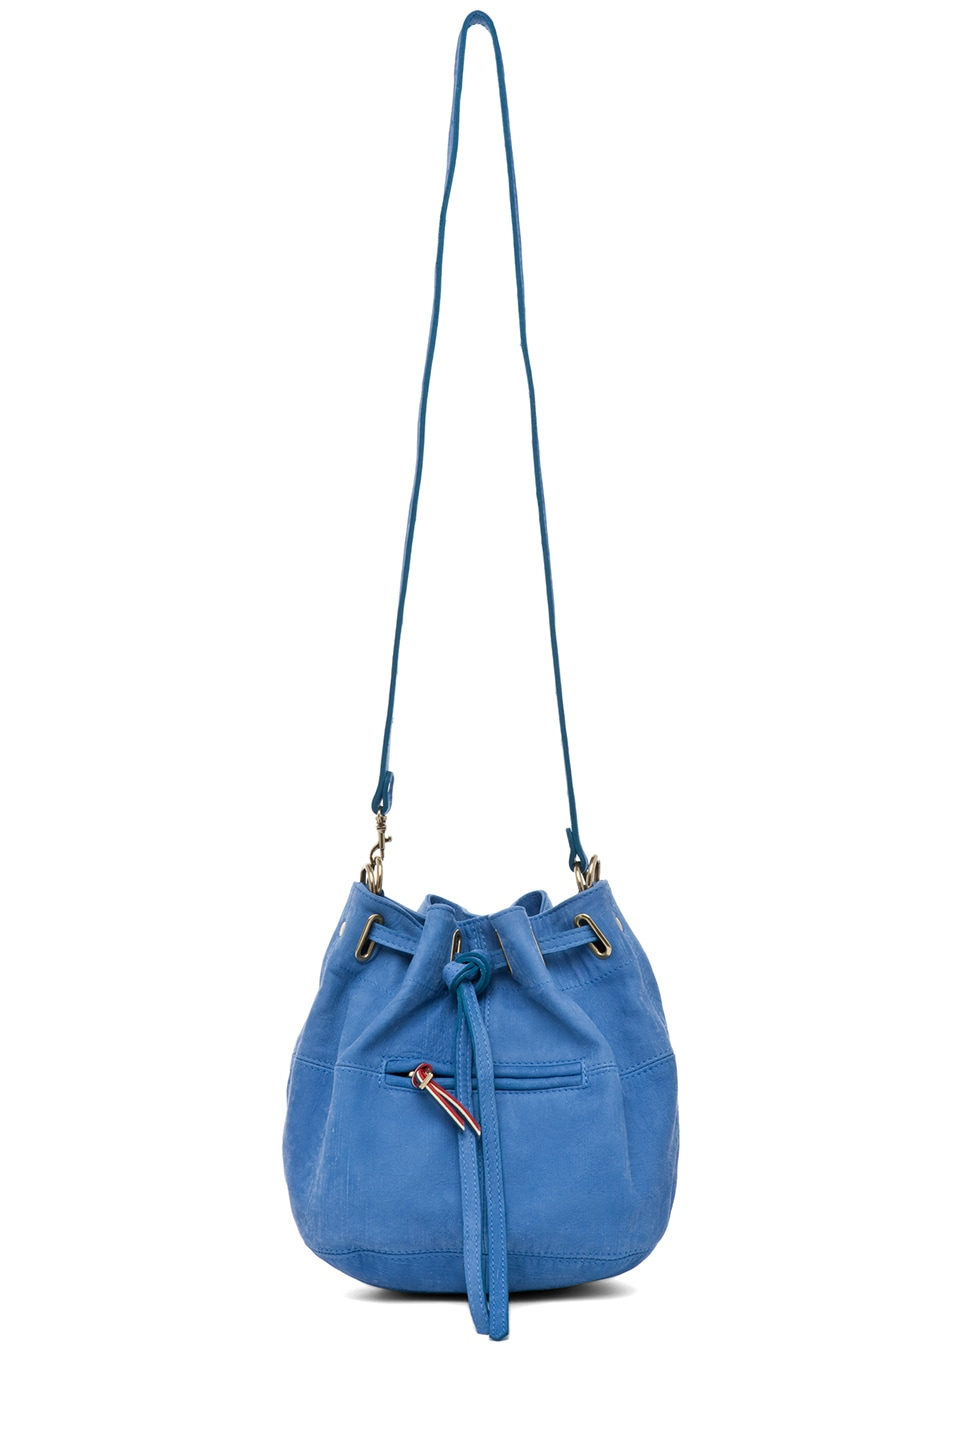 Image 5 of Jerome Dreyfuss Alain S Bag in Denim Bleu